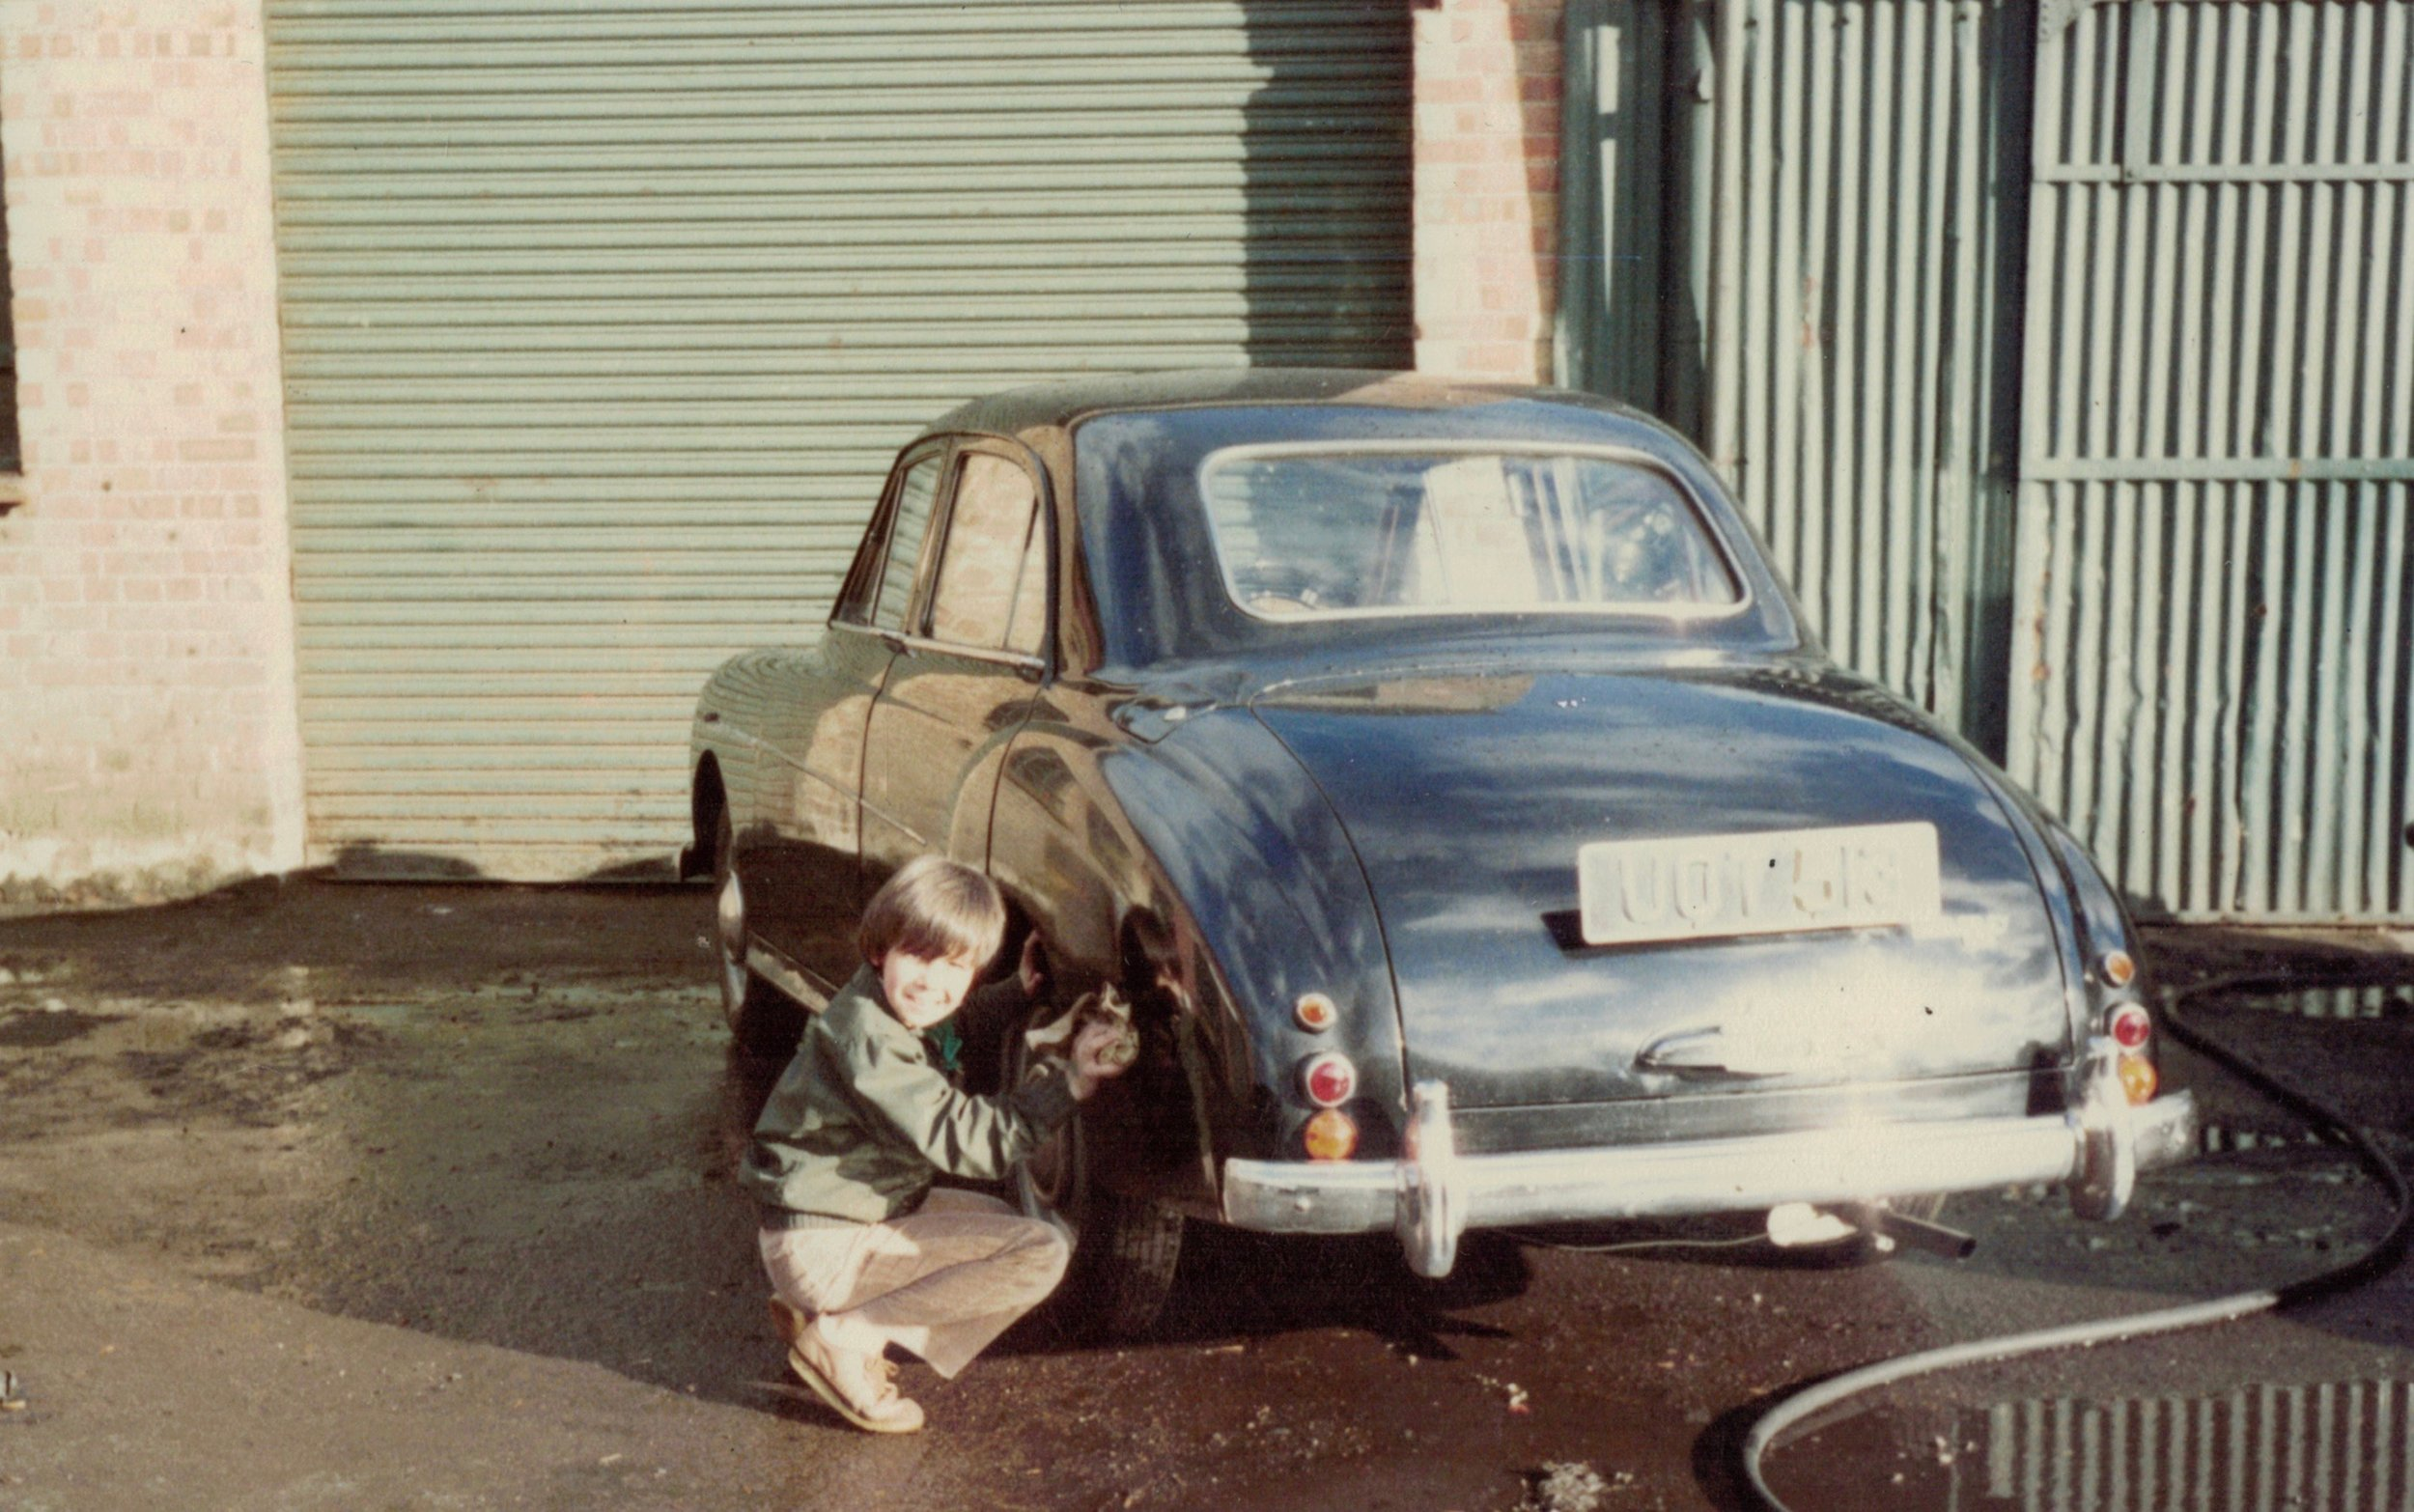 Rorky inventing detailing in 1978.